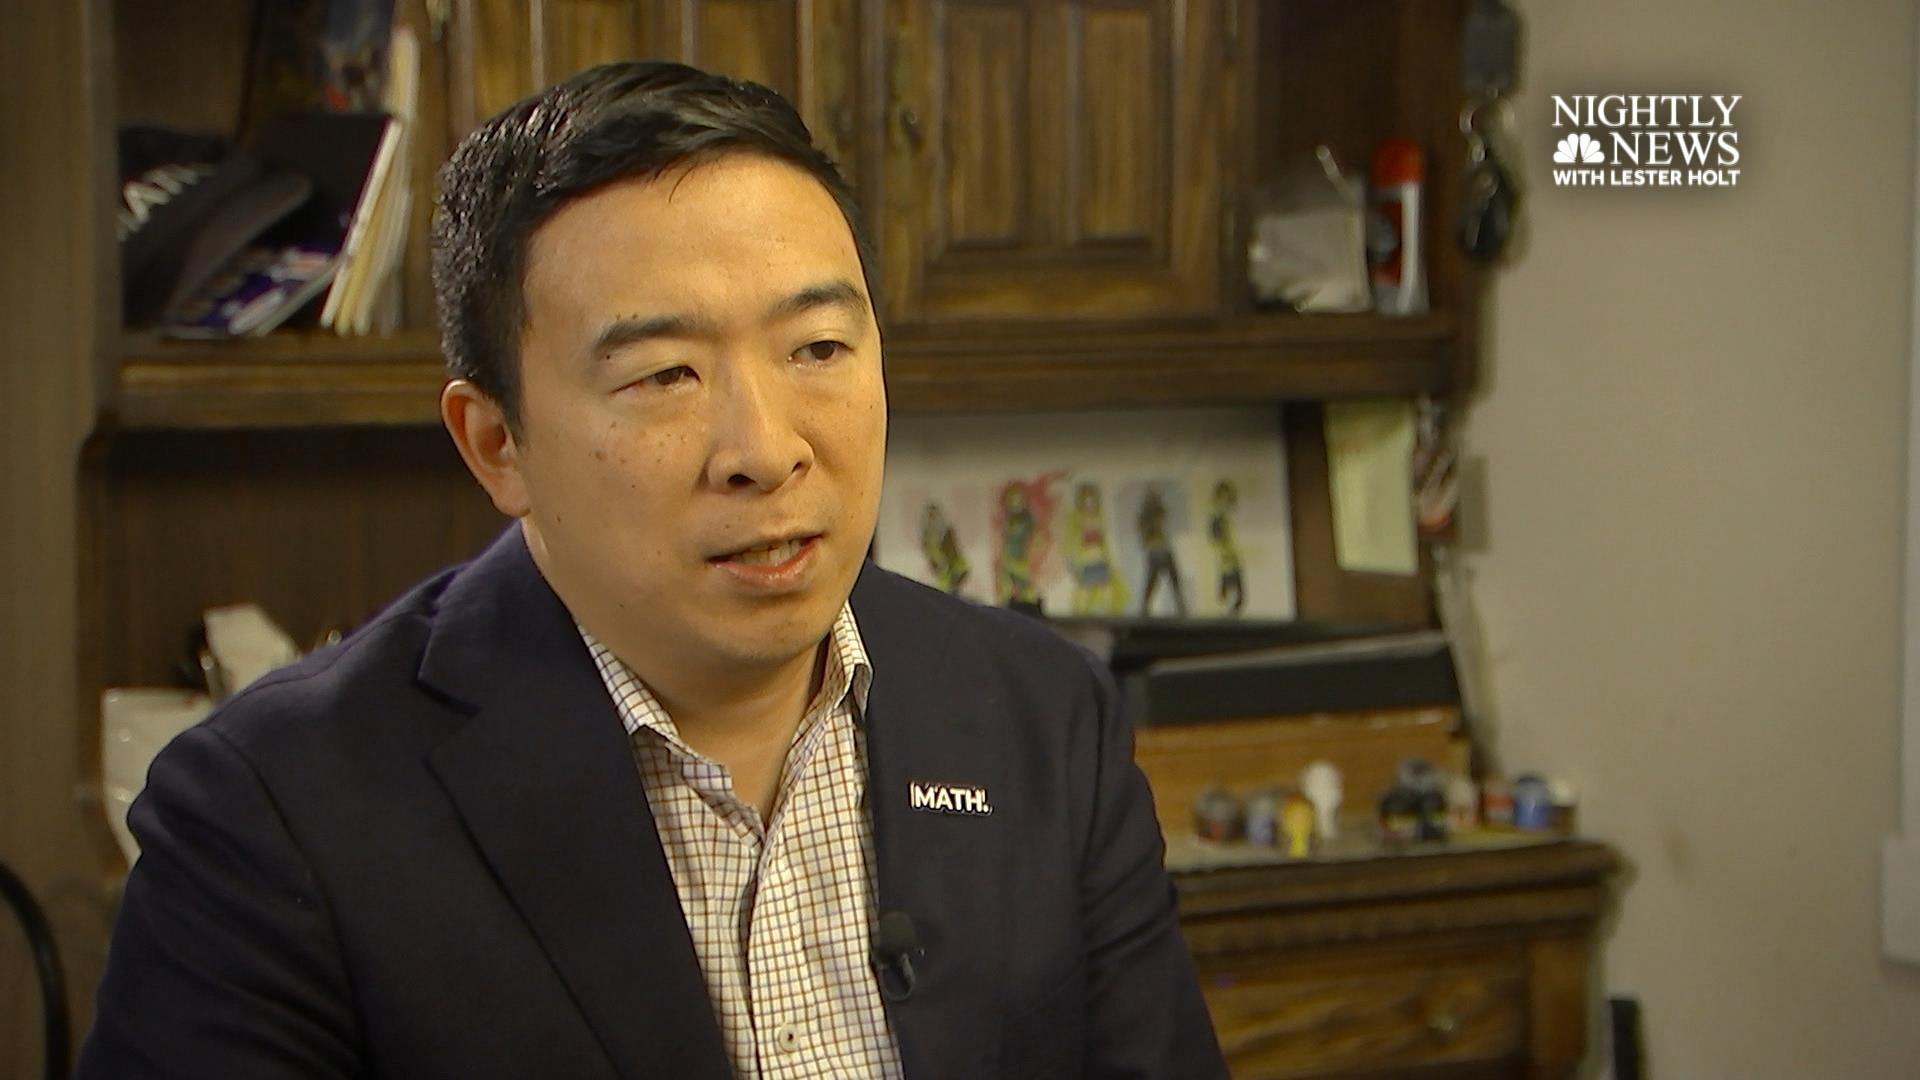 Andrew Yang on 'what matters' in 2020 election (extended interview)